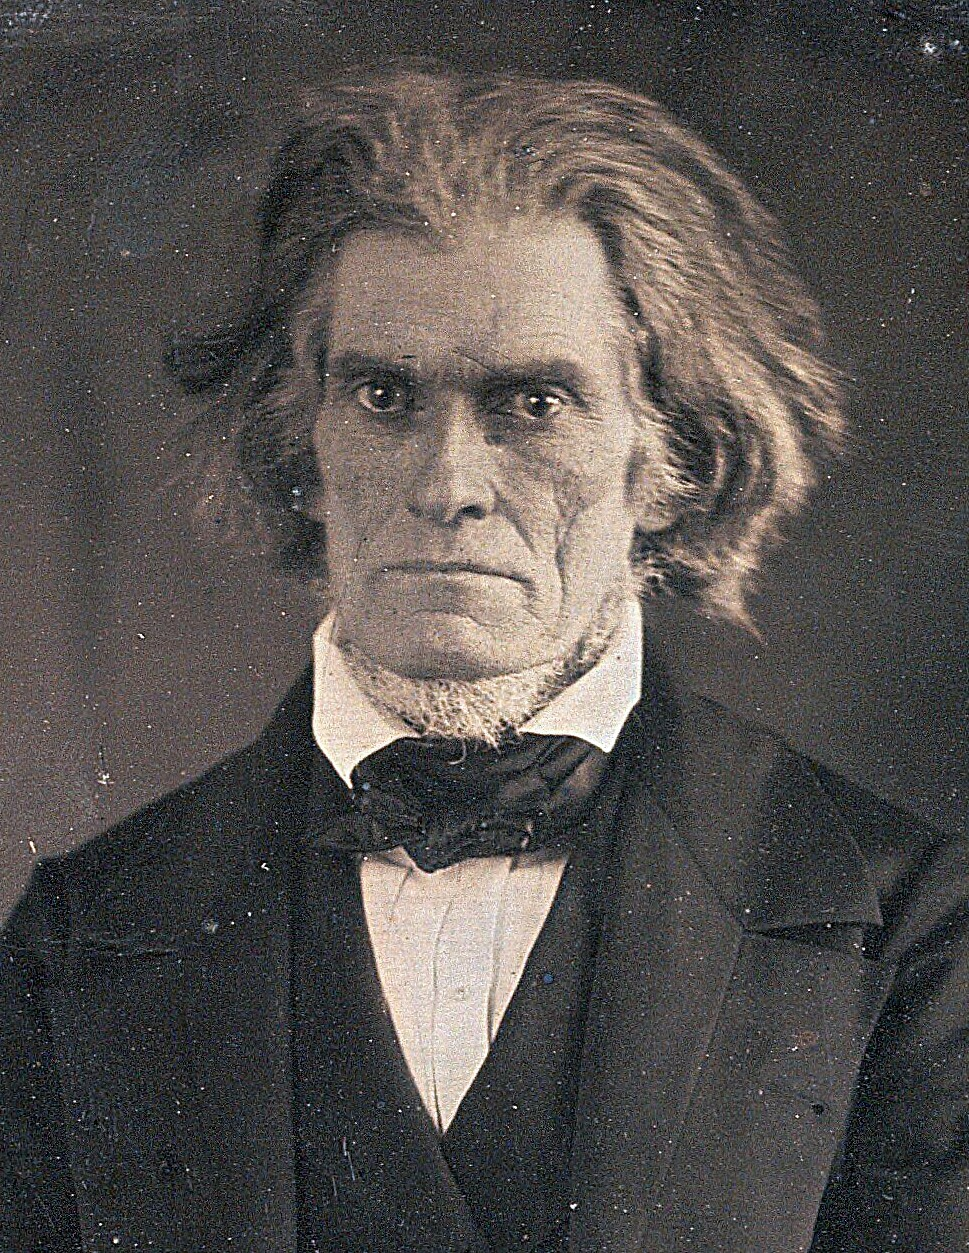 john c calhoun and the nullification crisis in the united states Overview: nullification is a constitutional theory that gives an individual state the right to declare null and avoid any law passed by the united states congress the two major characters in the nullification crisis are john c calhoun and andrew jackson.